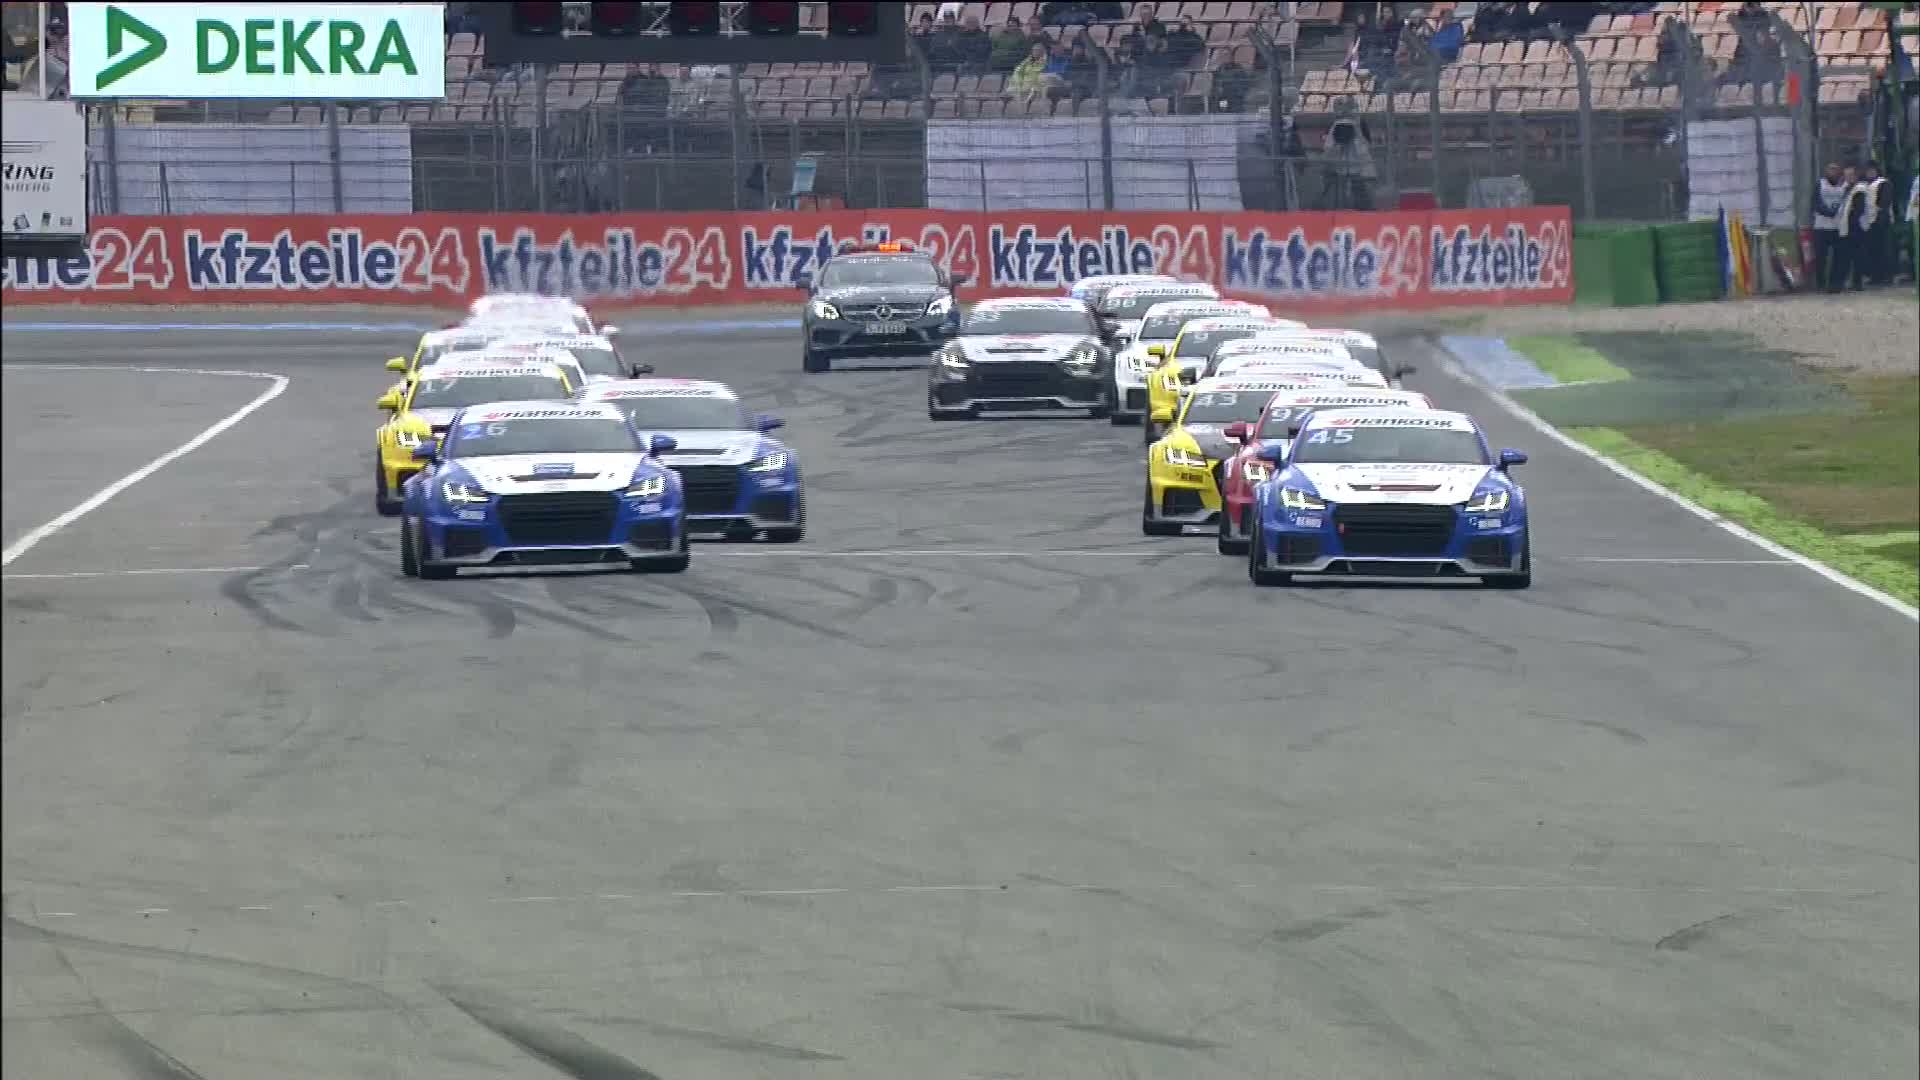 60 Seconds of Audi Sport 96/2015 - TT Cup Hockenheim, Race 1